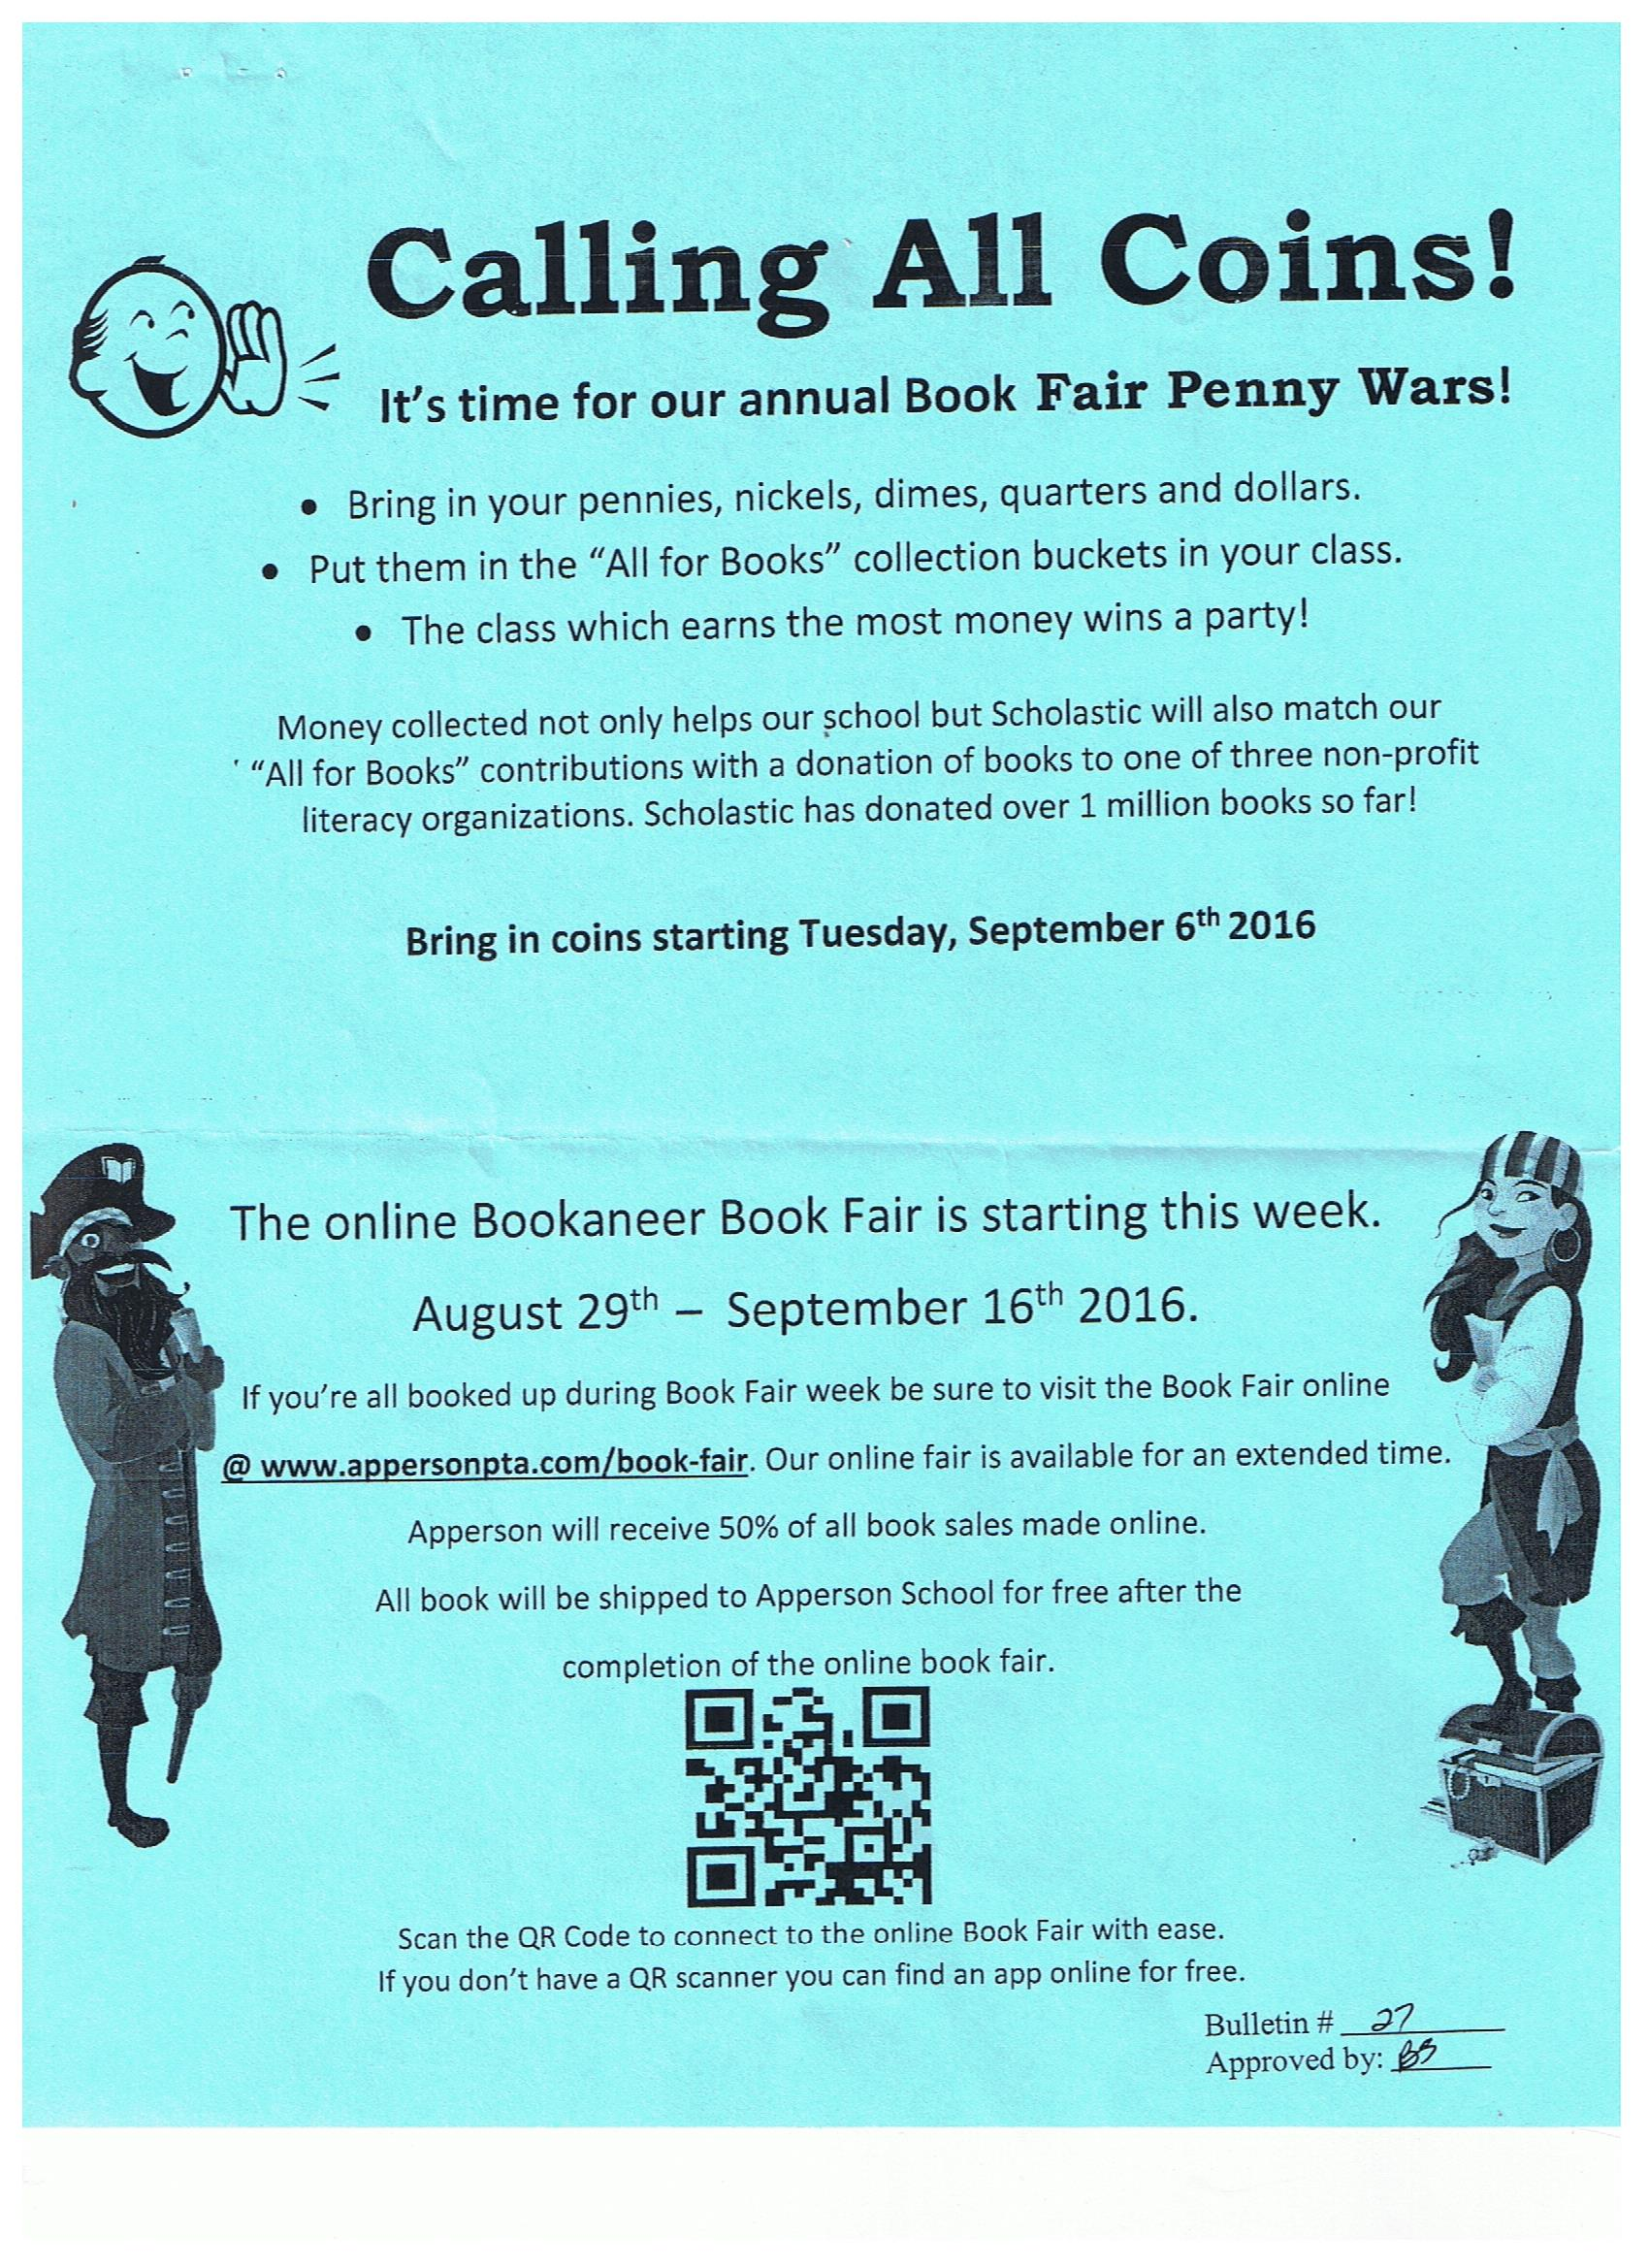 book fair penny war